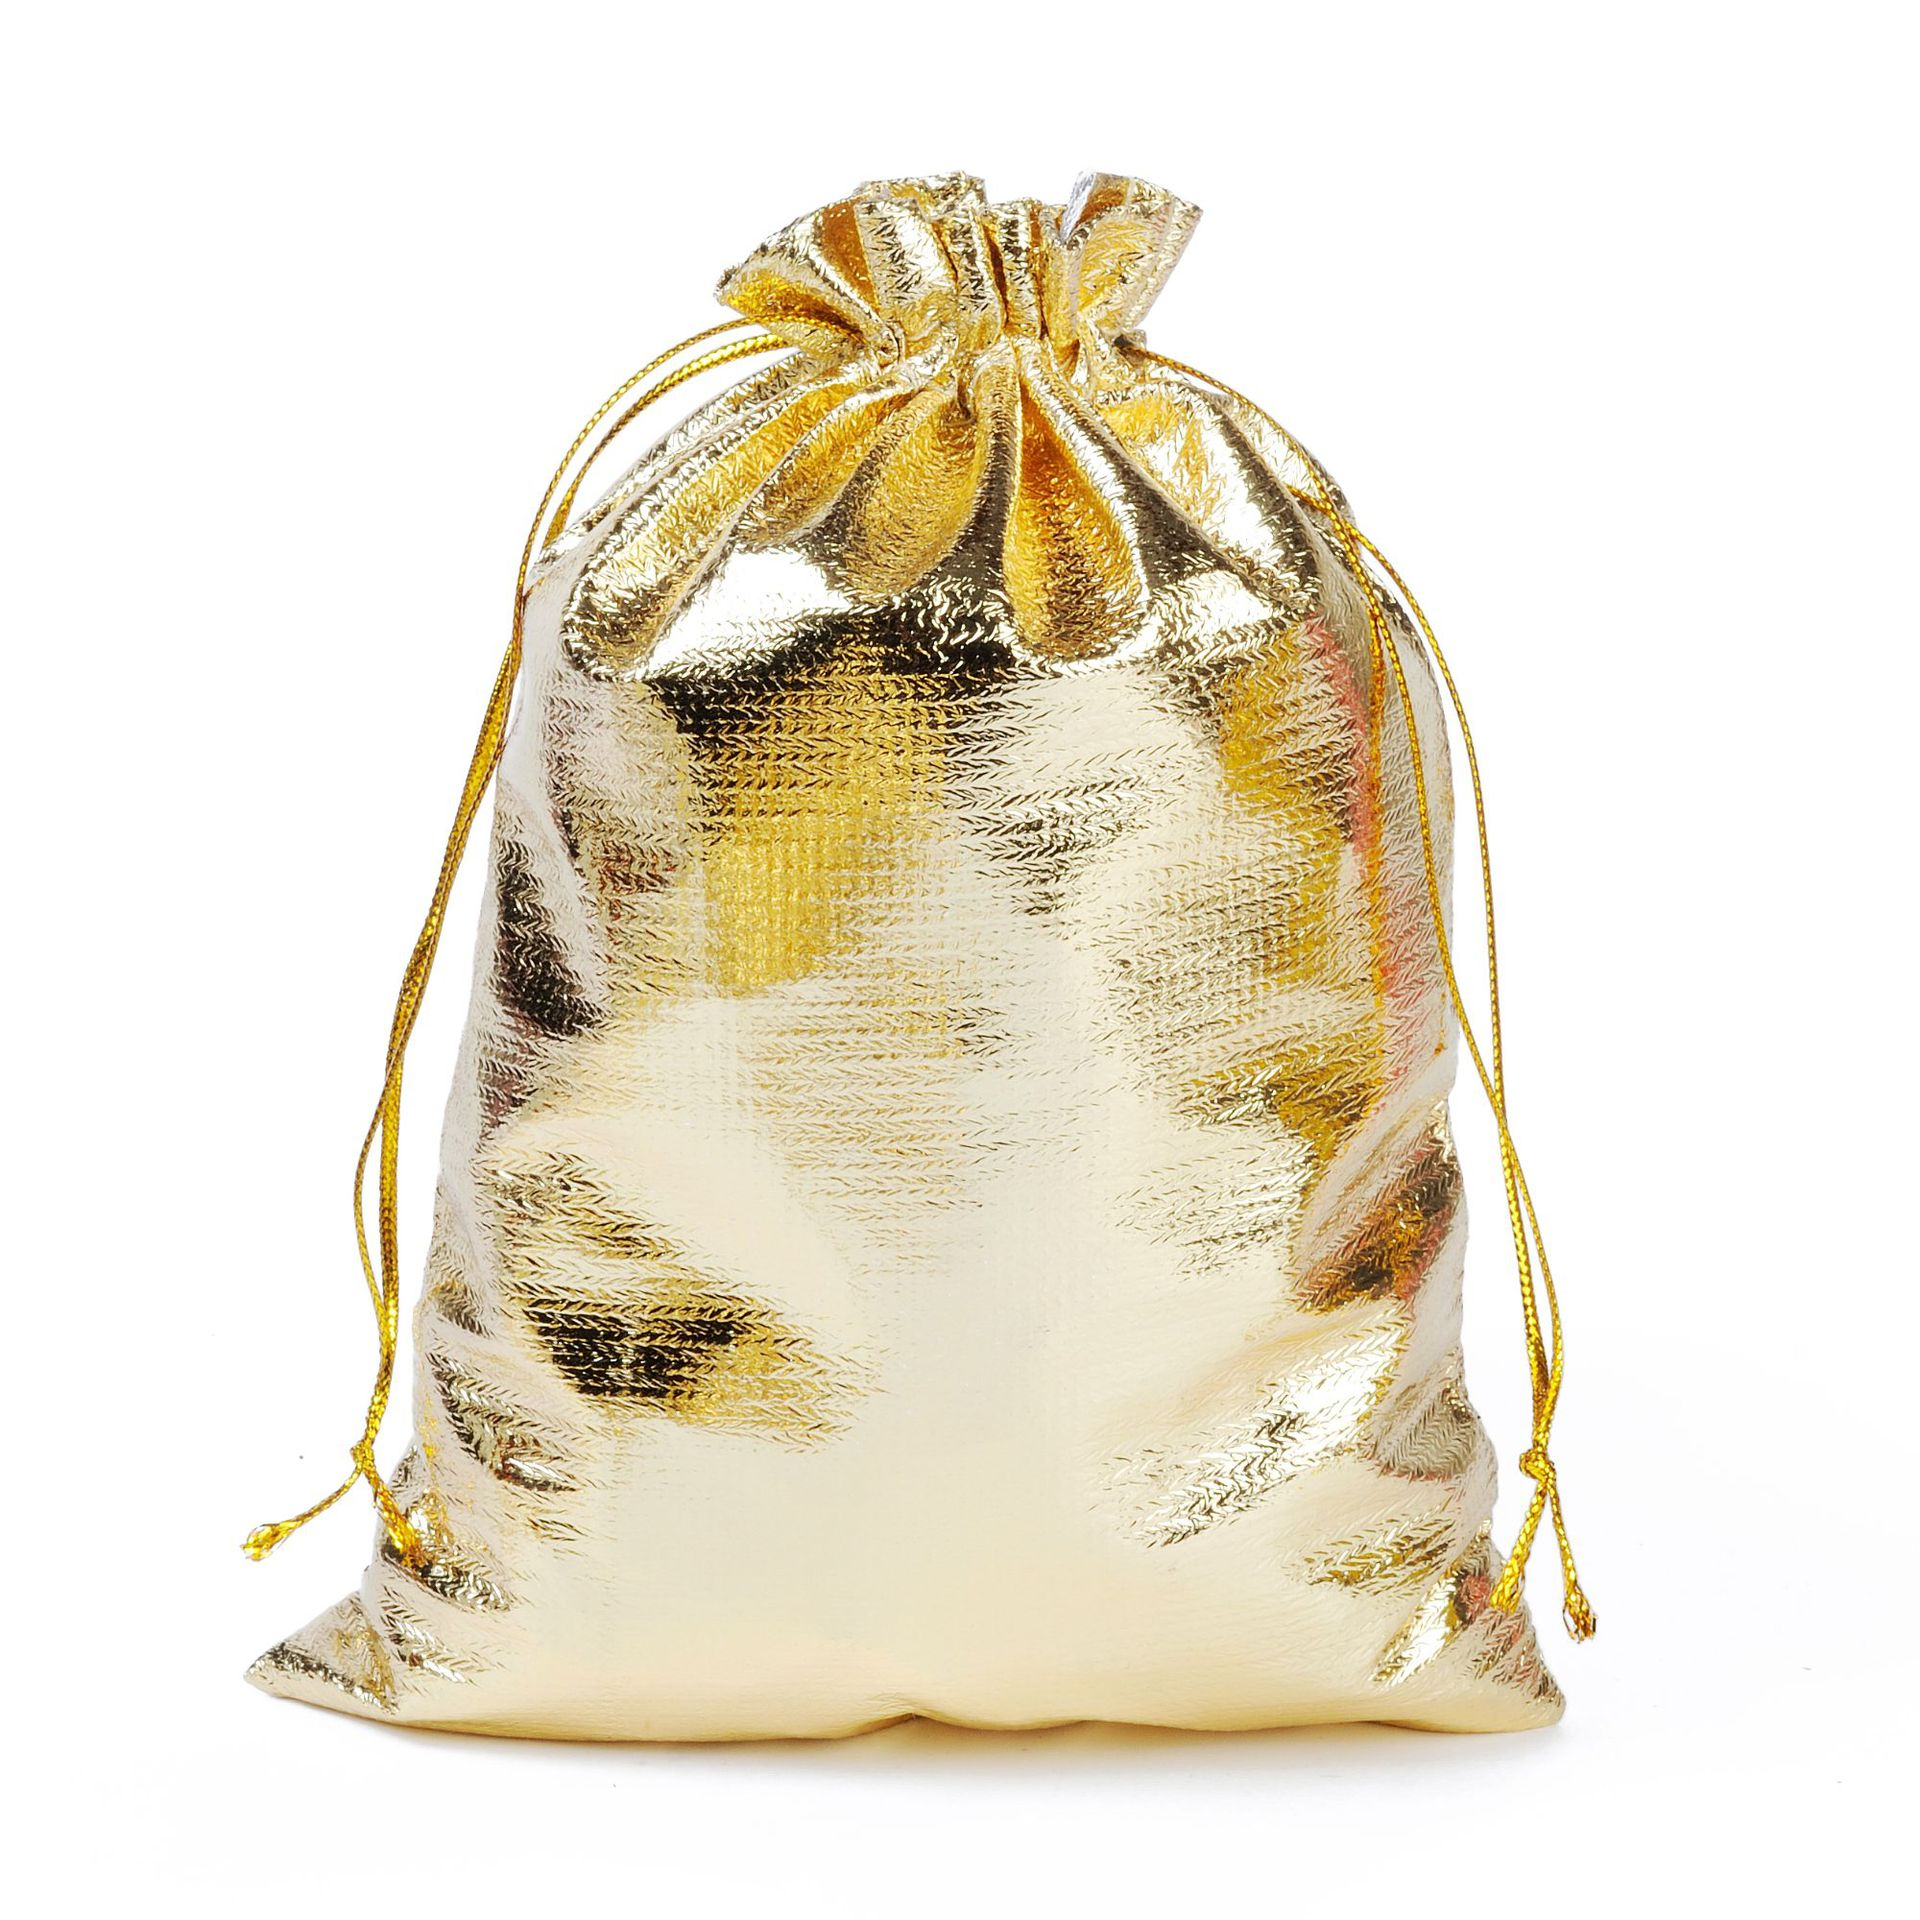 100pcs/lot 13x18cm Silver Golden Foil Cloth Drawstring Bag Wedding Gift Bags & Jewelry Packing Pouches